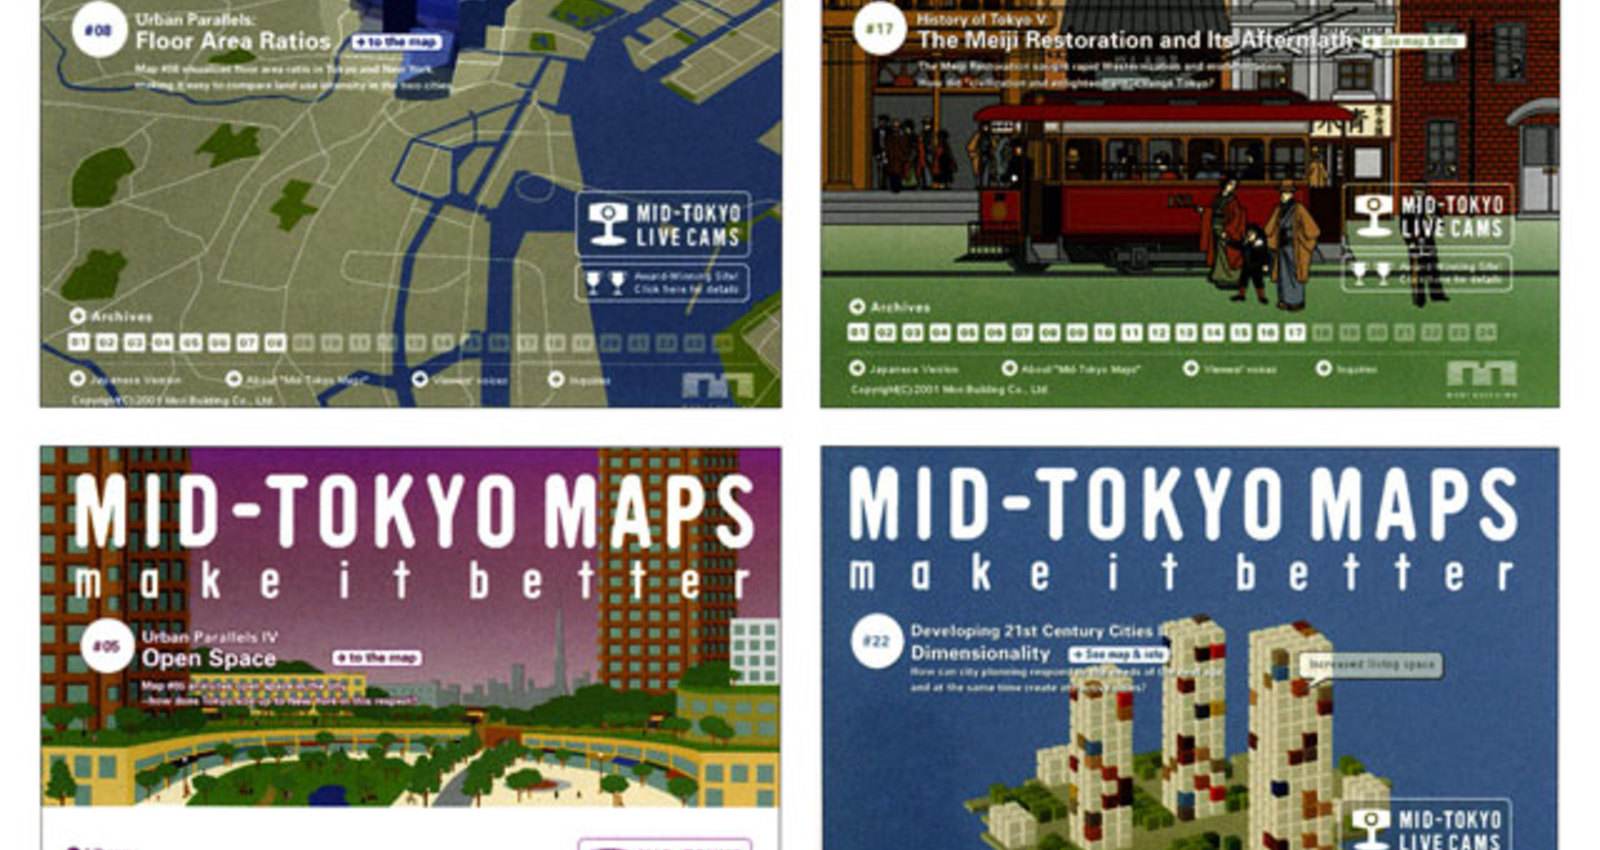 MID-TOKYO MAPS